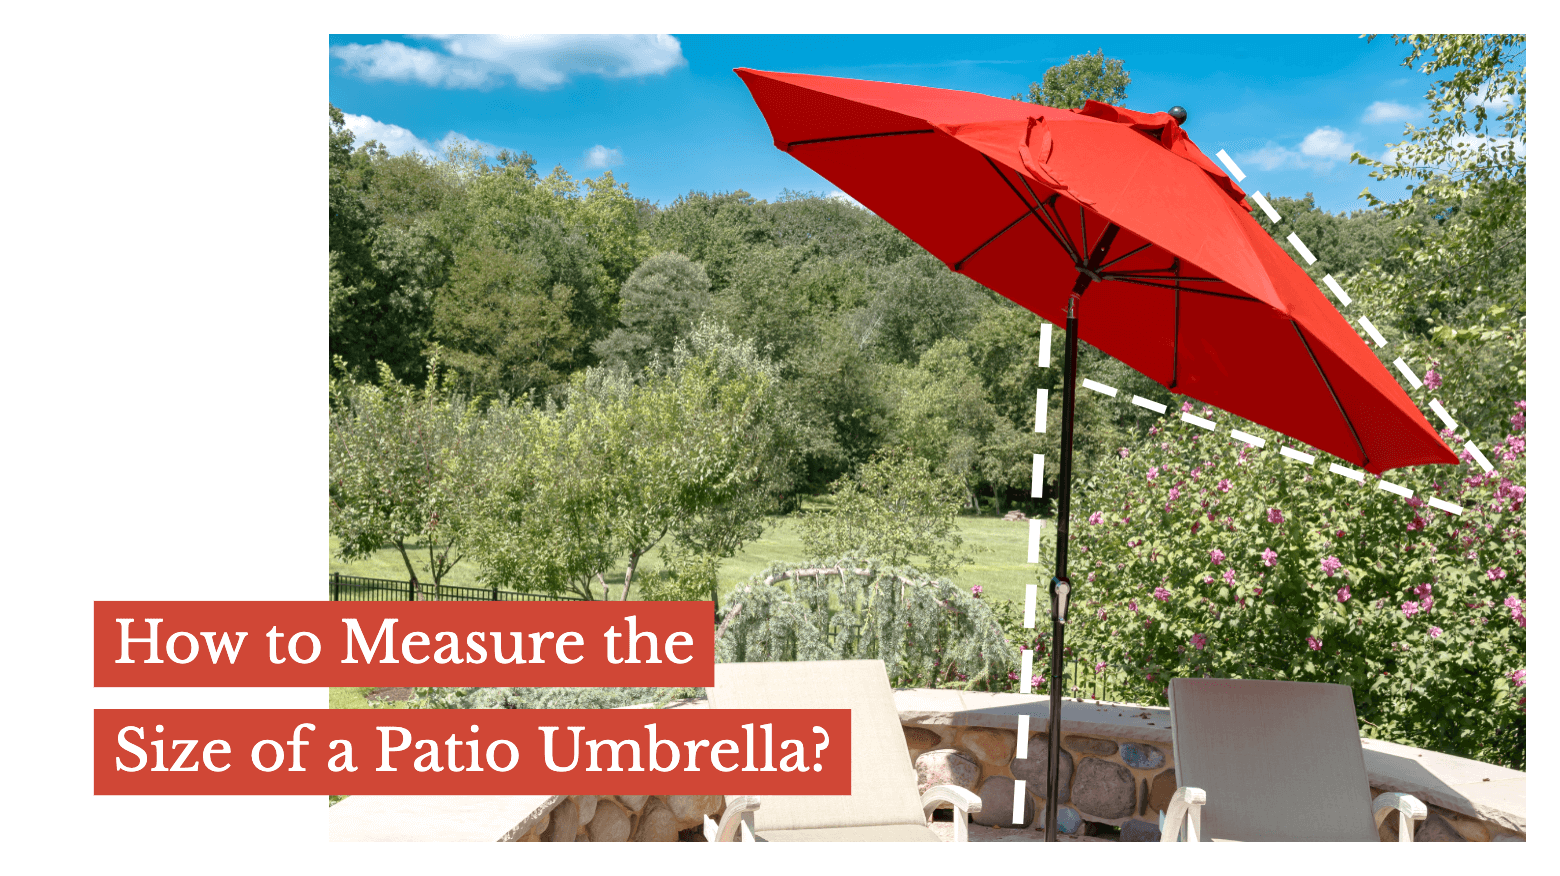 How to Measure the Size of a Patio Umbrella?